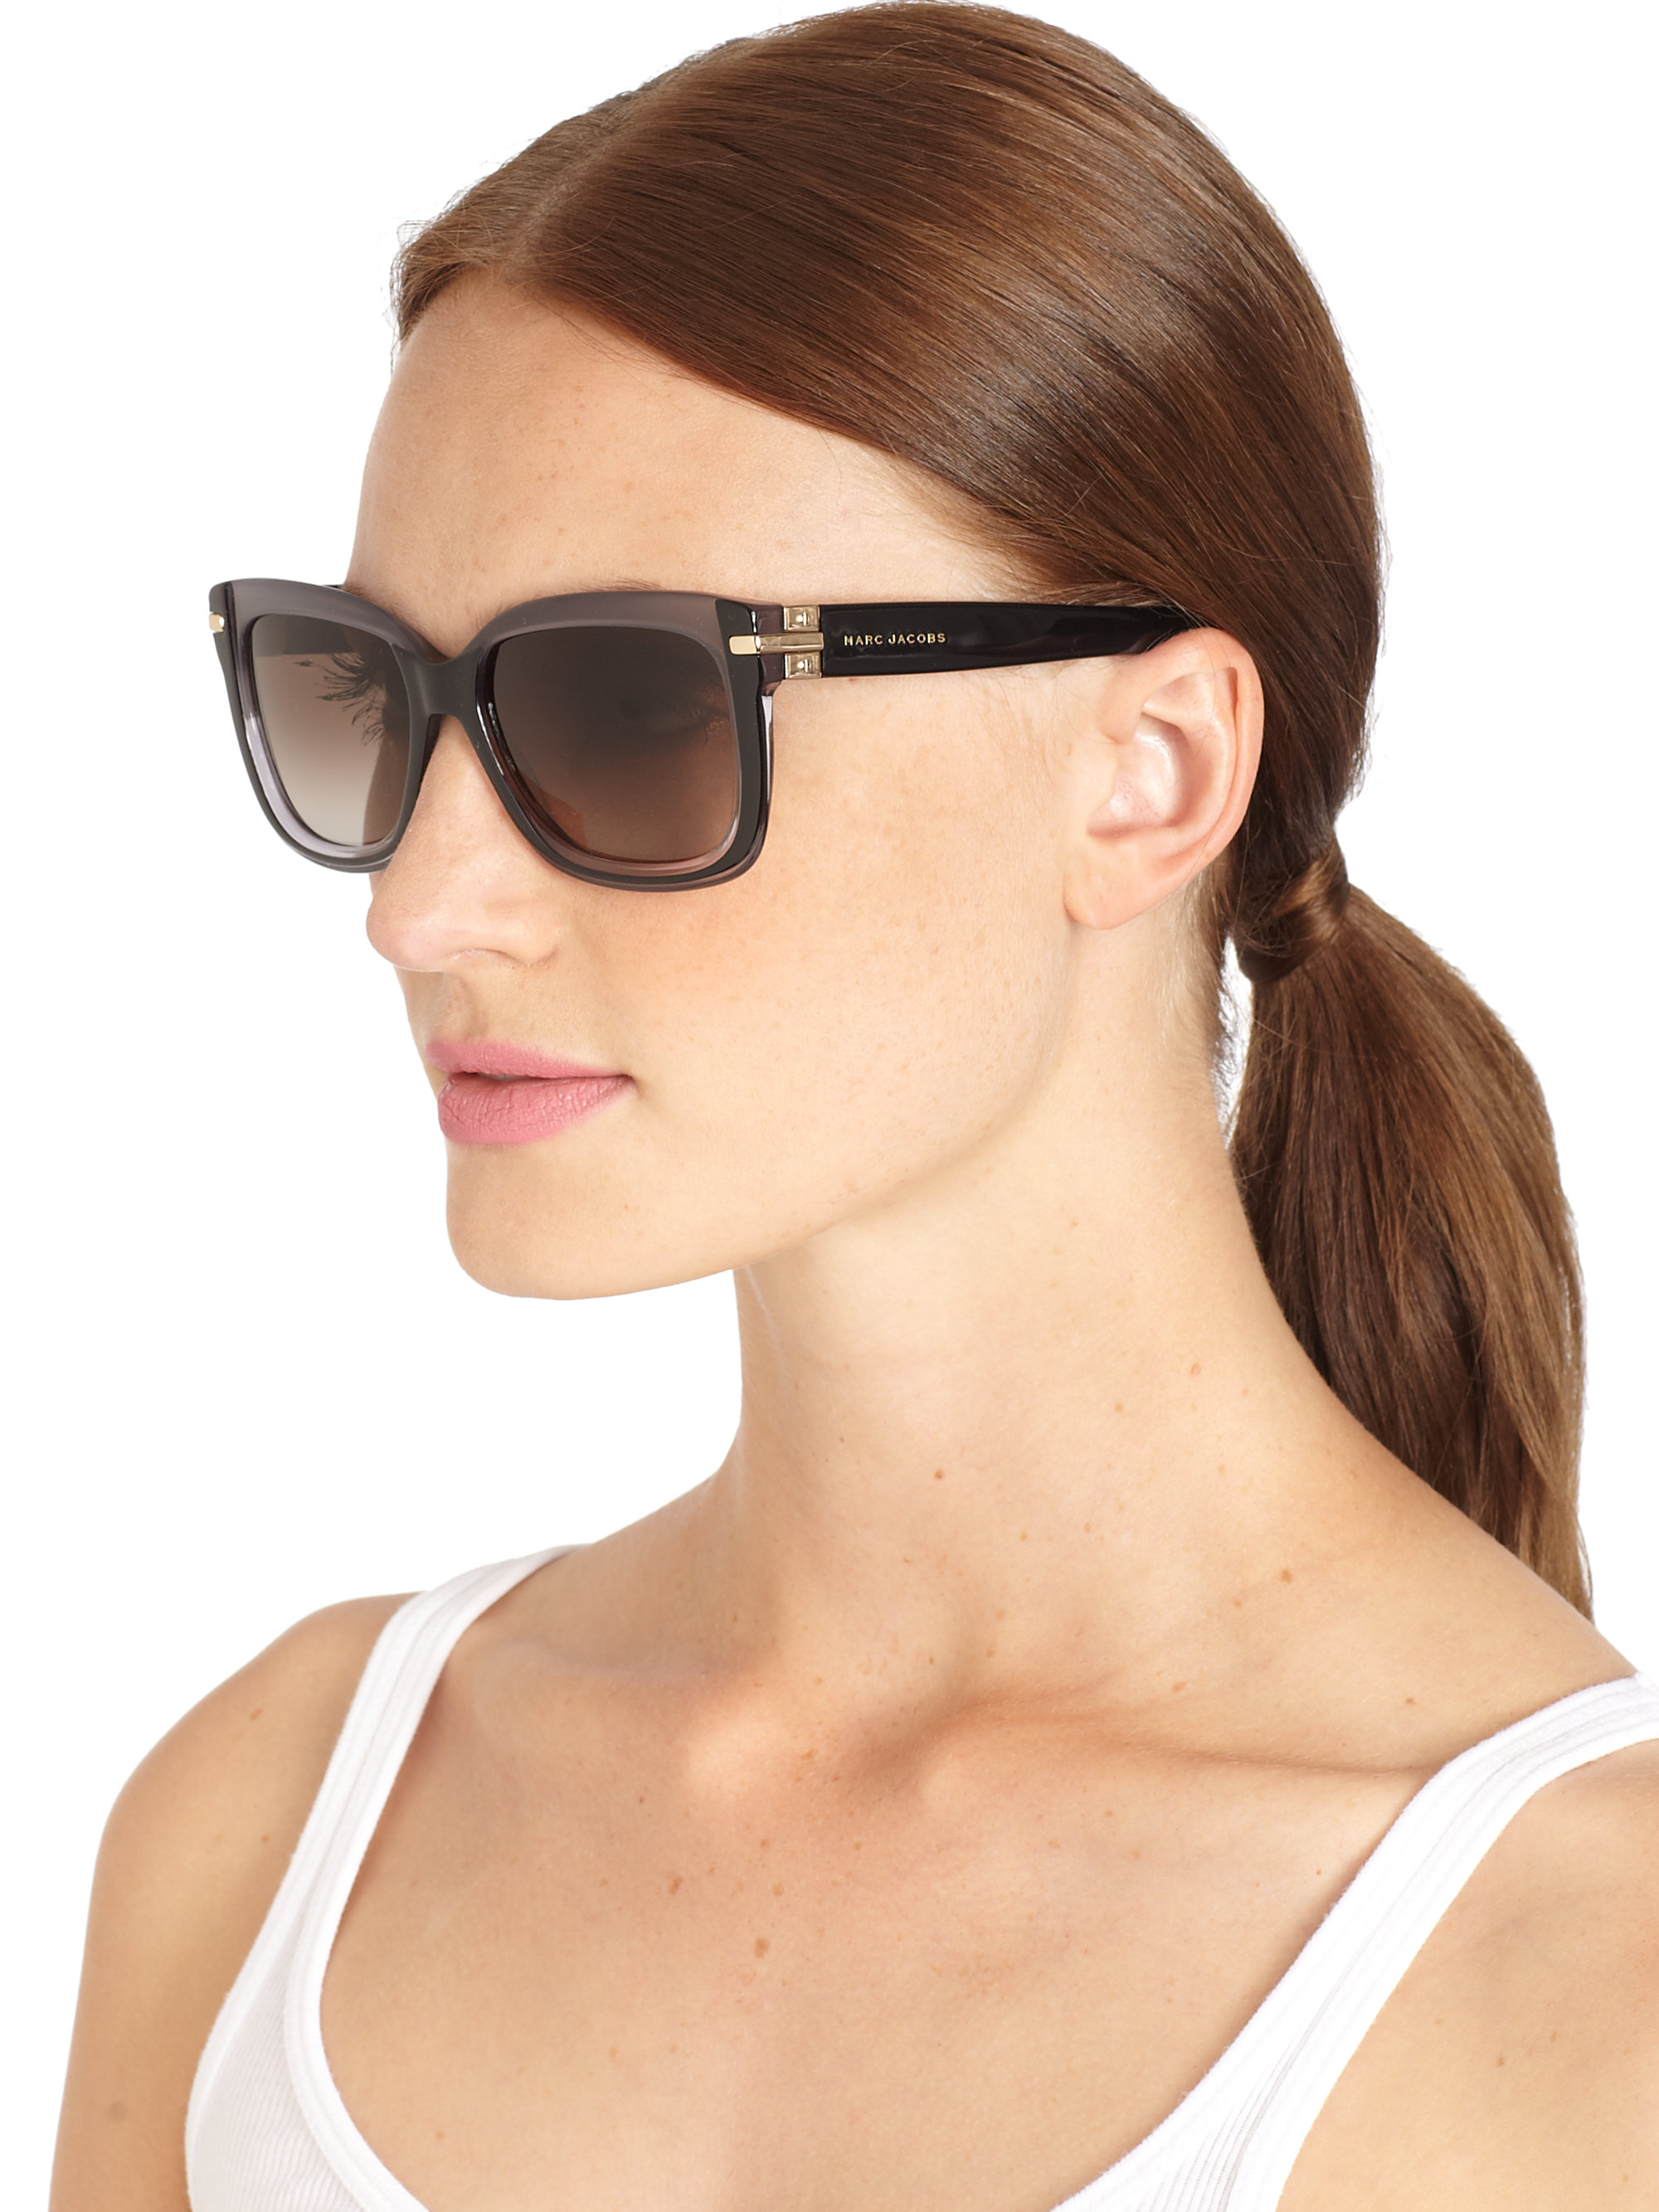 03089fe347 Lyst - Marc Jacobs Oversized Acetate Square Sunglasses in Black